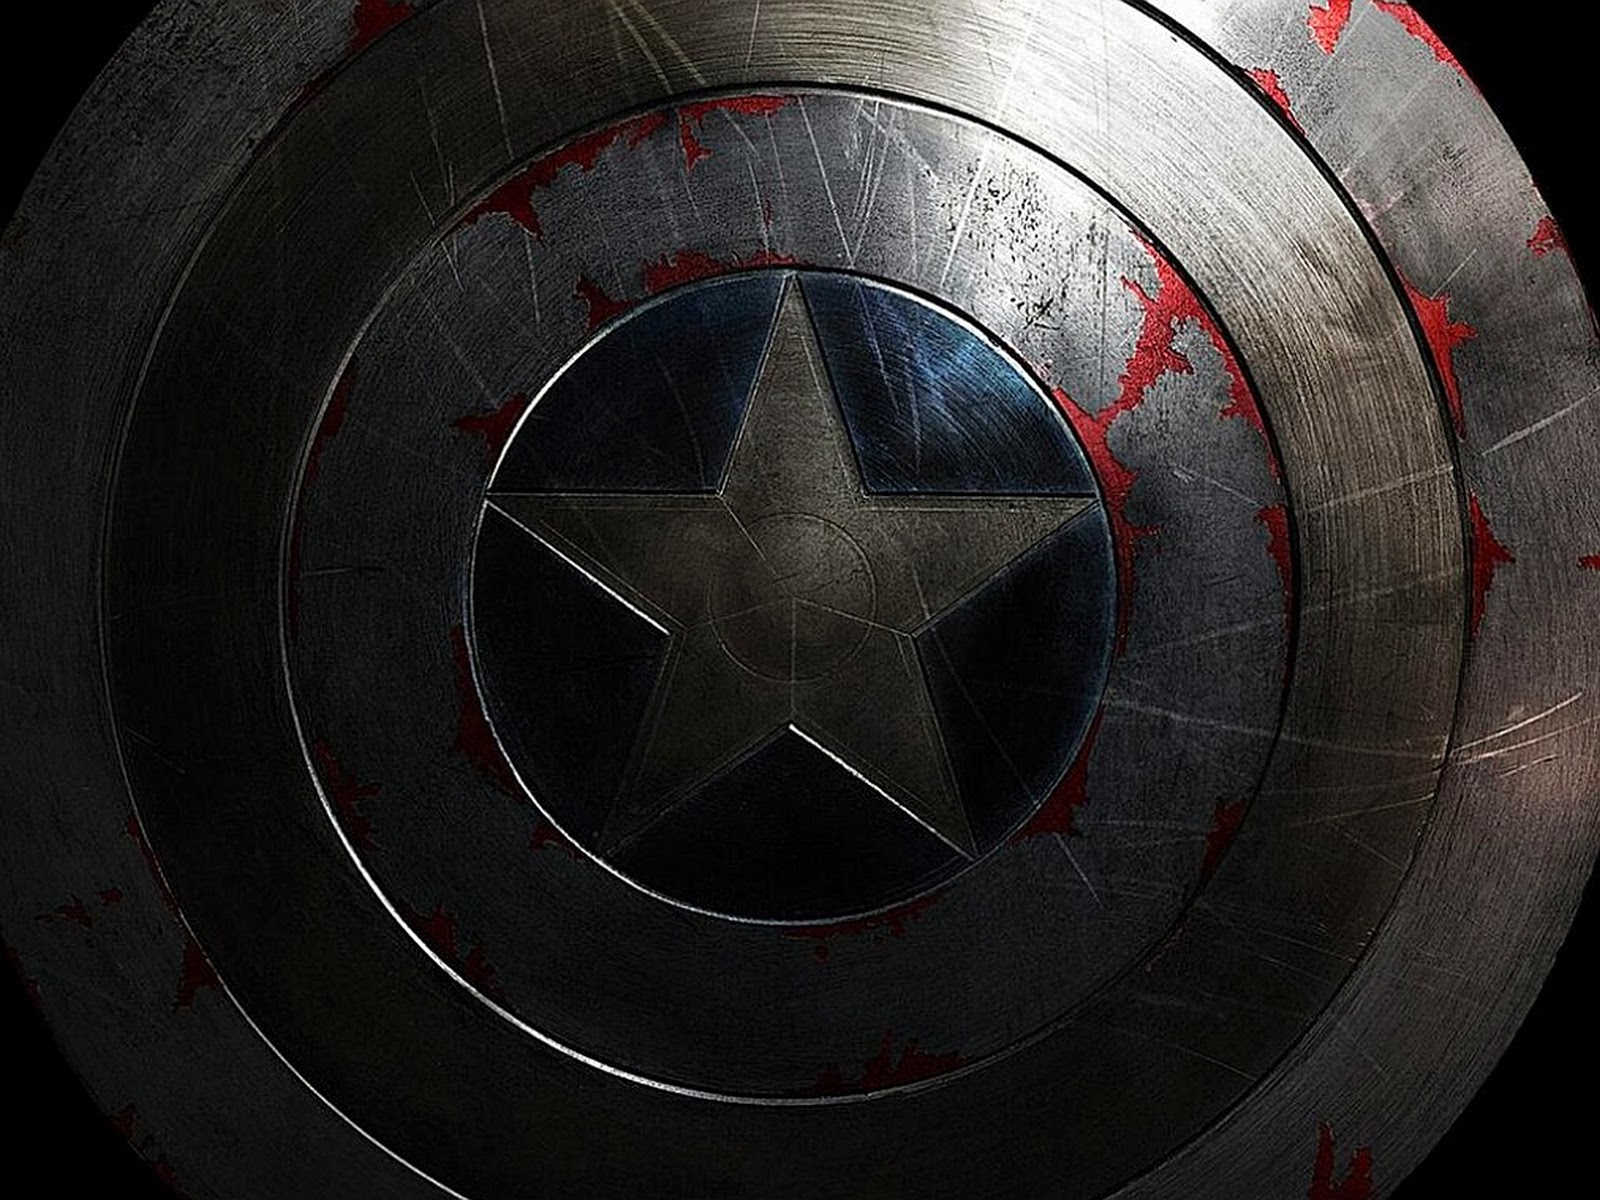 captain america 2 the winter soldier star shield 2014 marvel movie hd 1600x1200